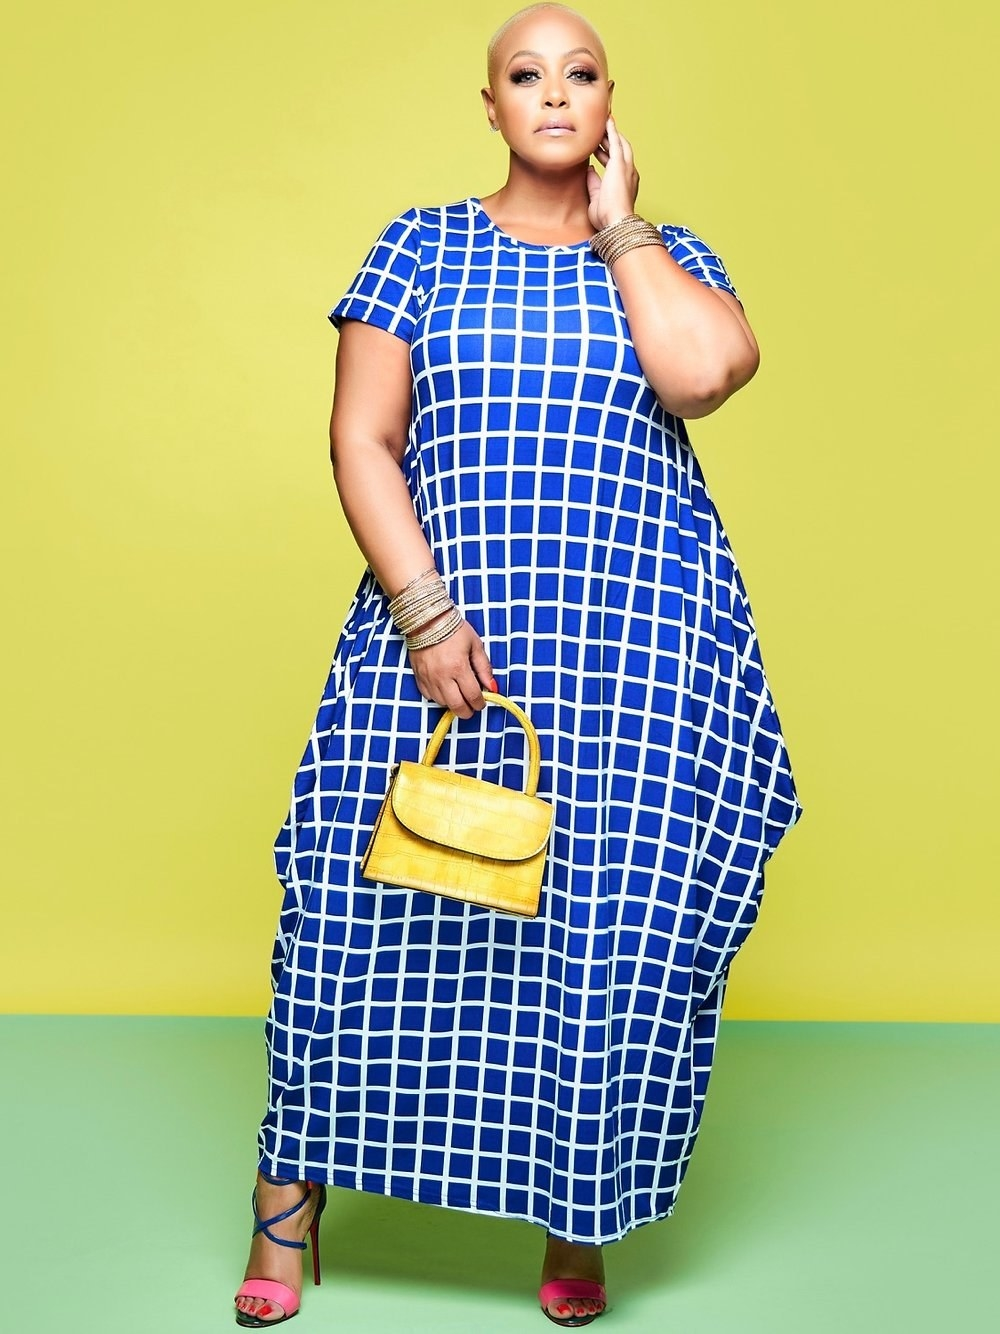 Model wearing the t-shirt maxi dress that goes down to the ankle in blue with a white checkered print